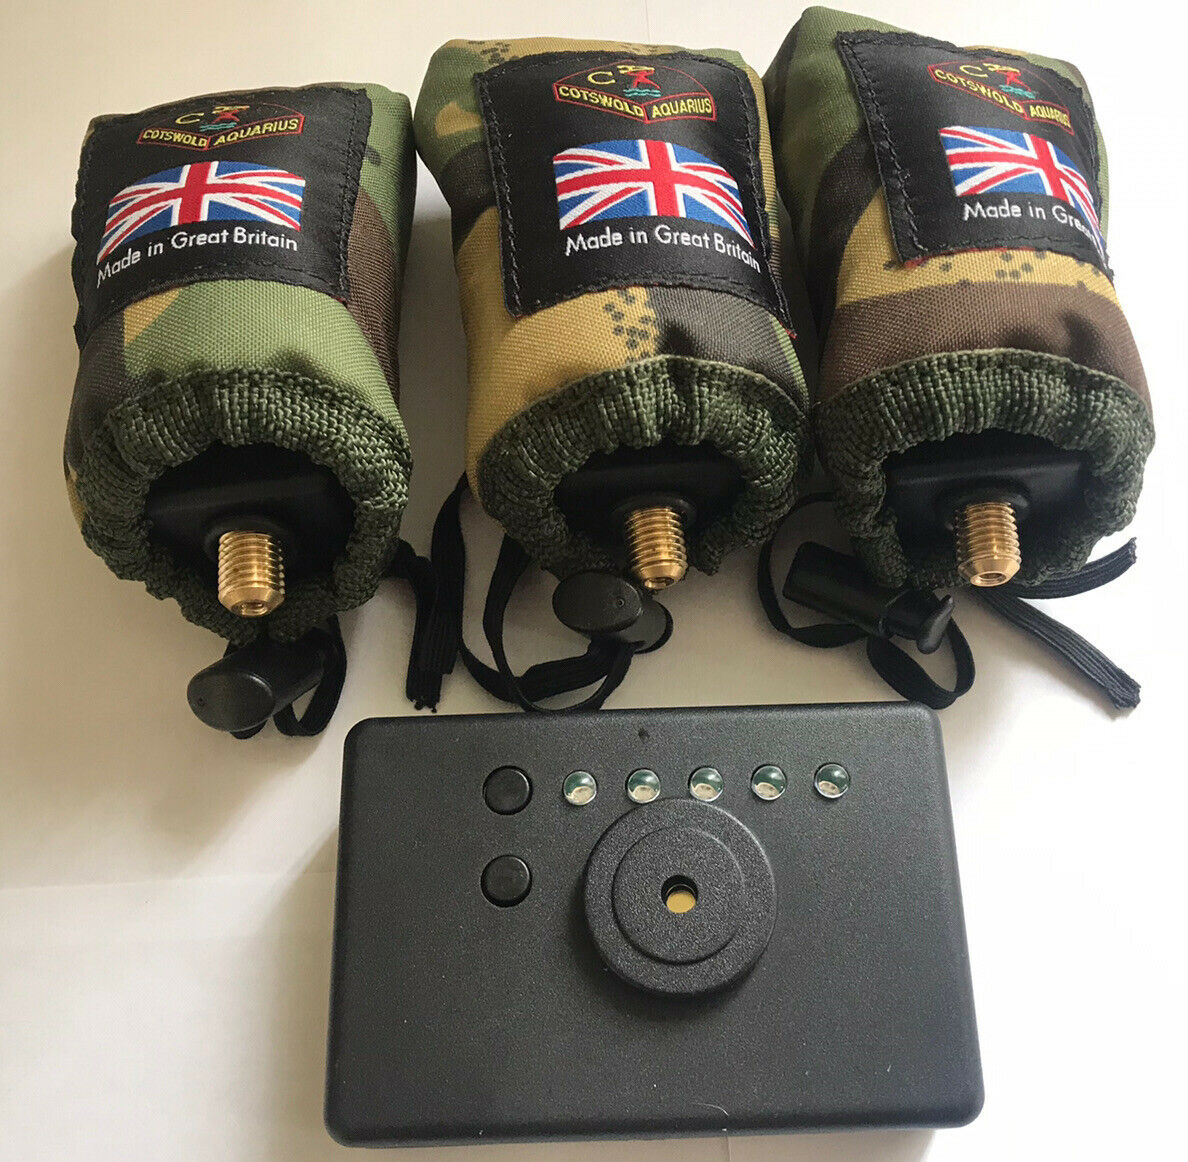 Ad - Steve Neville Remote Alarms And Receiver On eBay here -->> https://t.co/FuREdSlfob  #carp